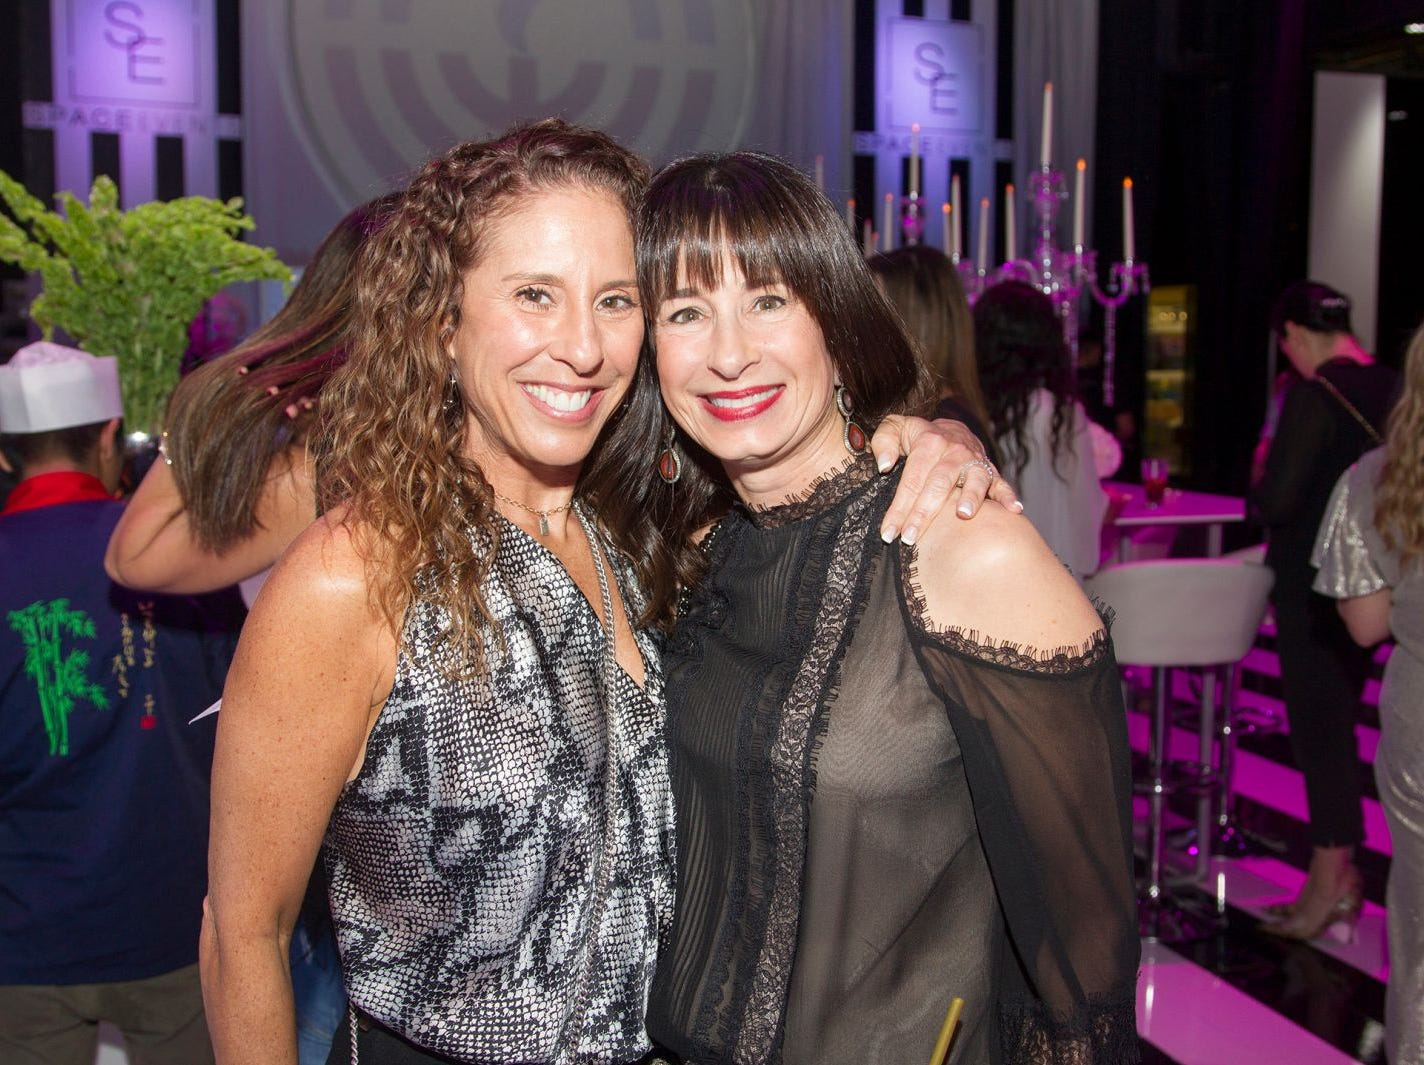 Karen Farber, Suzette Diamond. Jewish Federation of Northern New Jersey held its first Girl's Night Out dance party at Space in Englewood. 01/24/2019